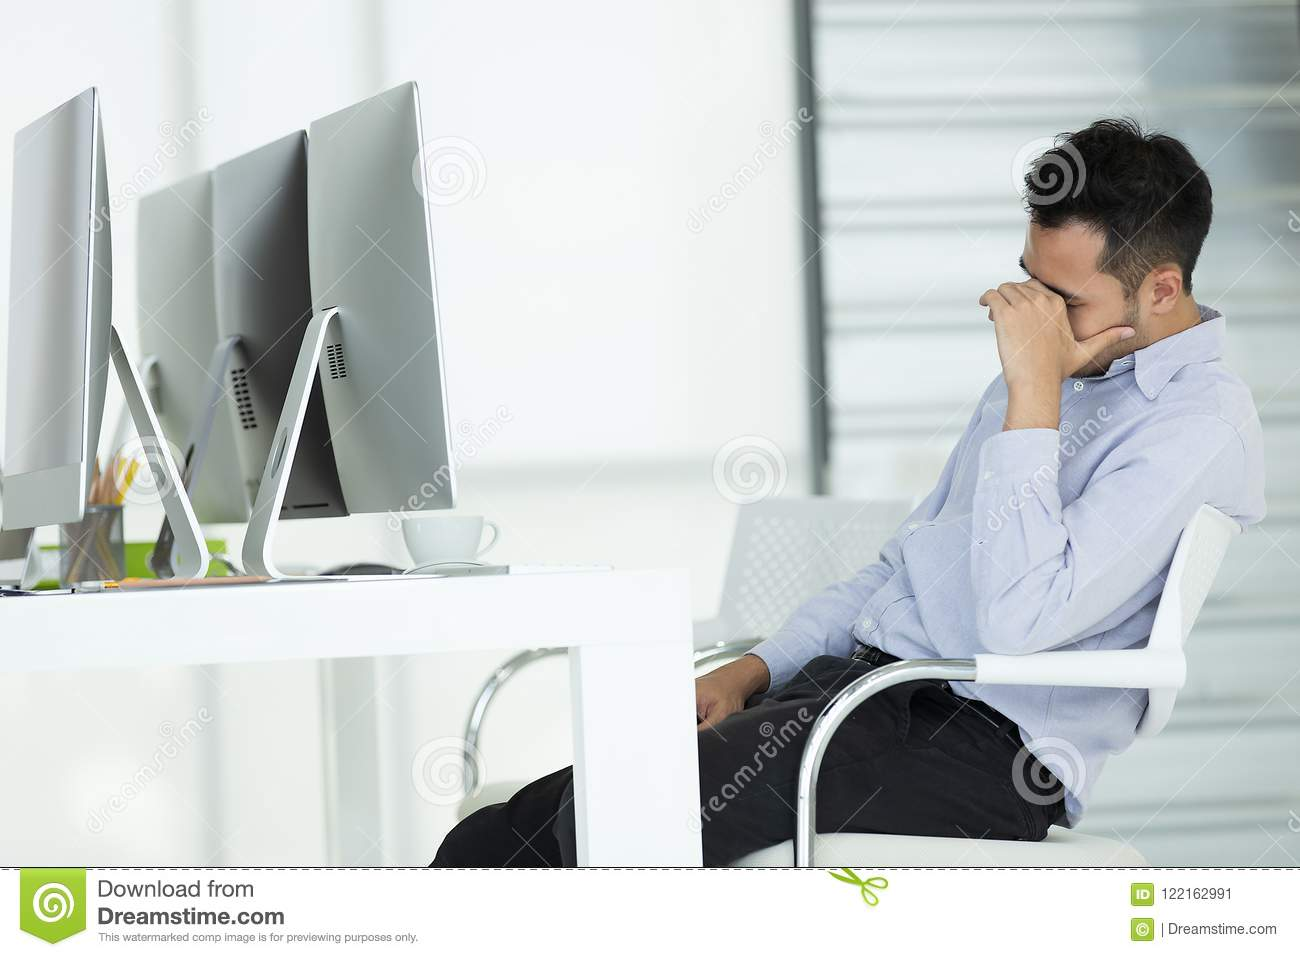 Young businessmen in stress. Sit in front of modern office computer, concept for hard work in an organization.